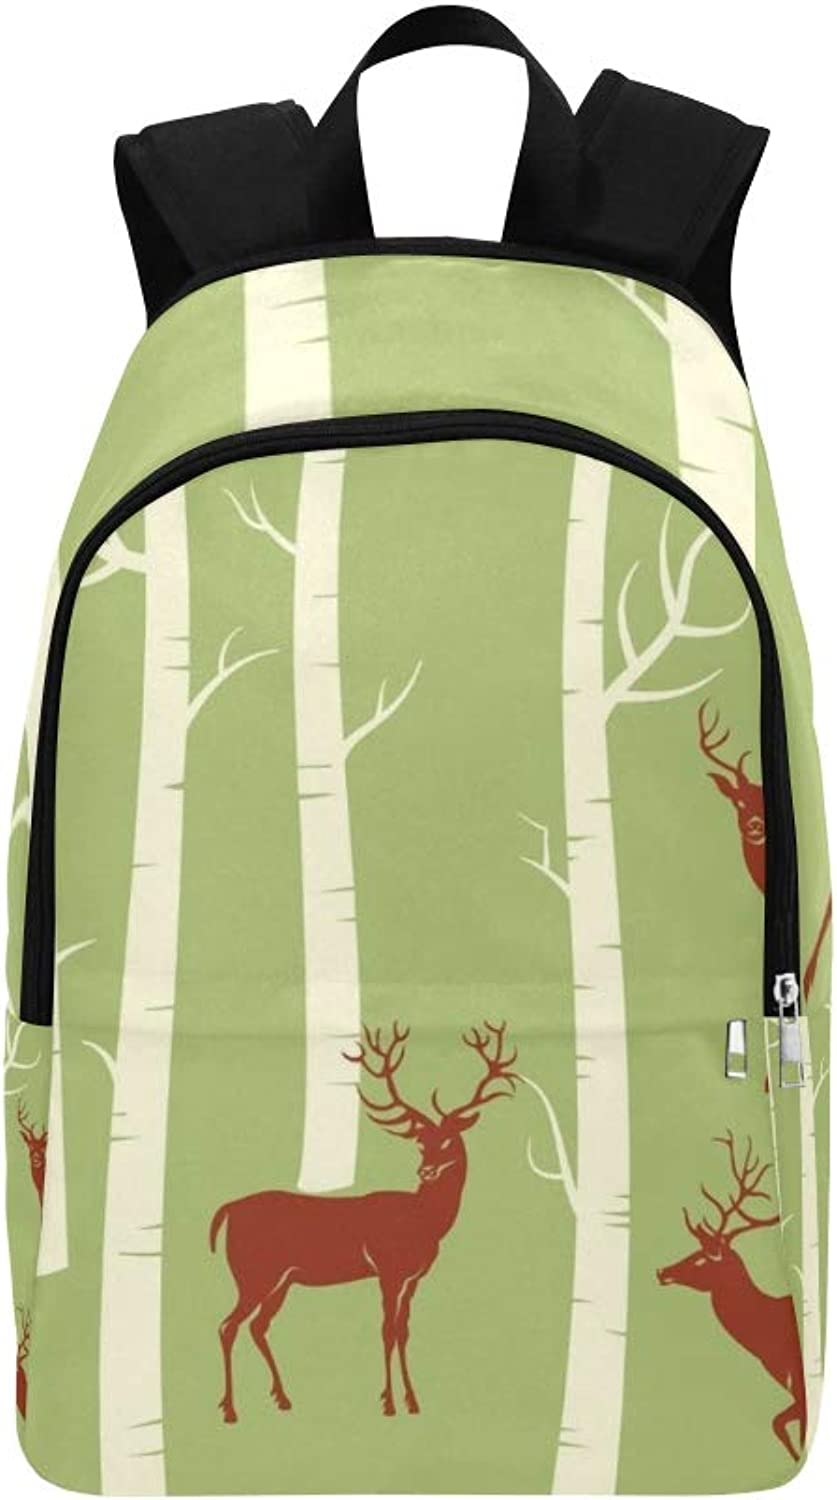 Deers Change color One Click Mouse Casual Daypack Travel Bag College School Backpack for Mens and Women